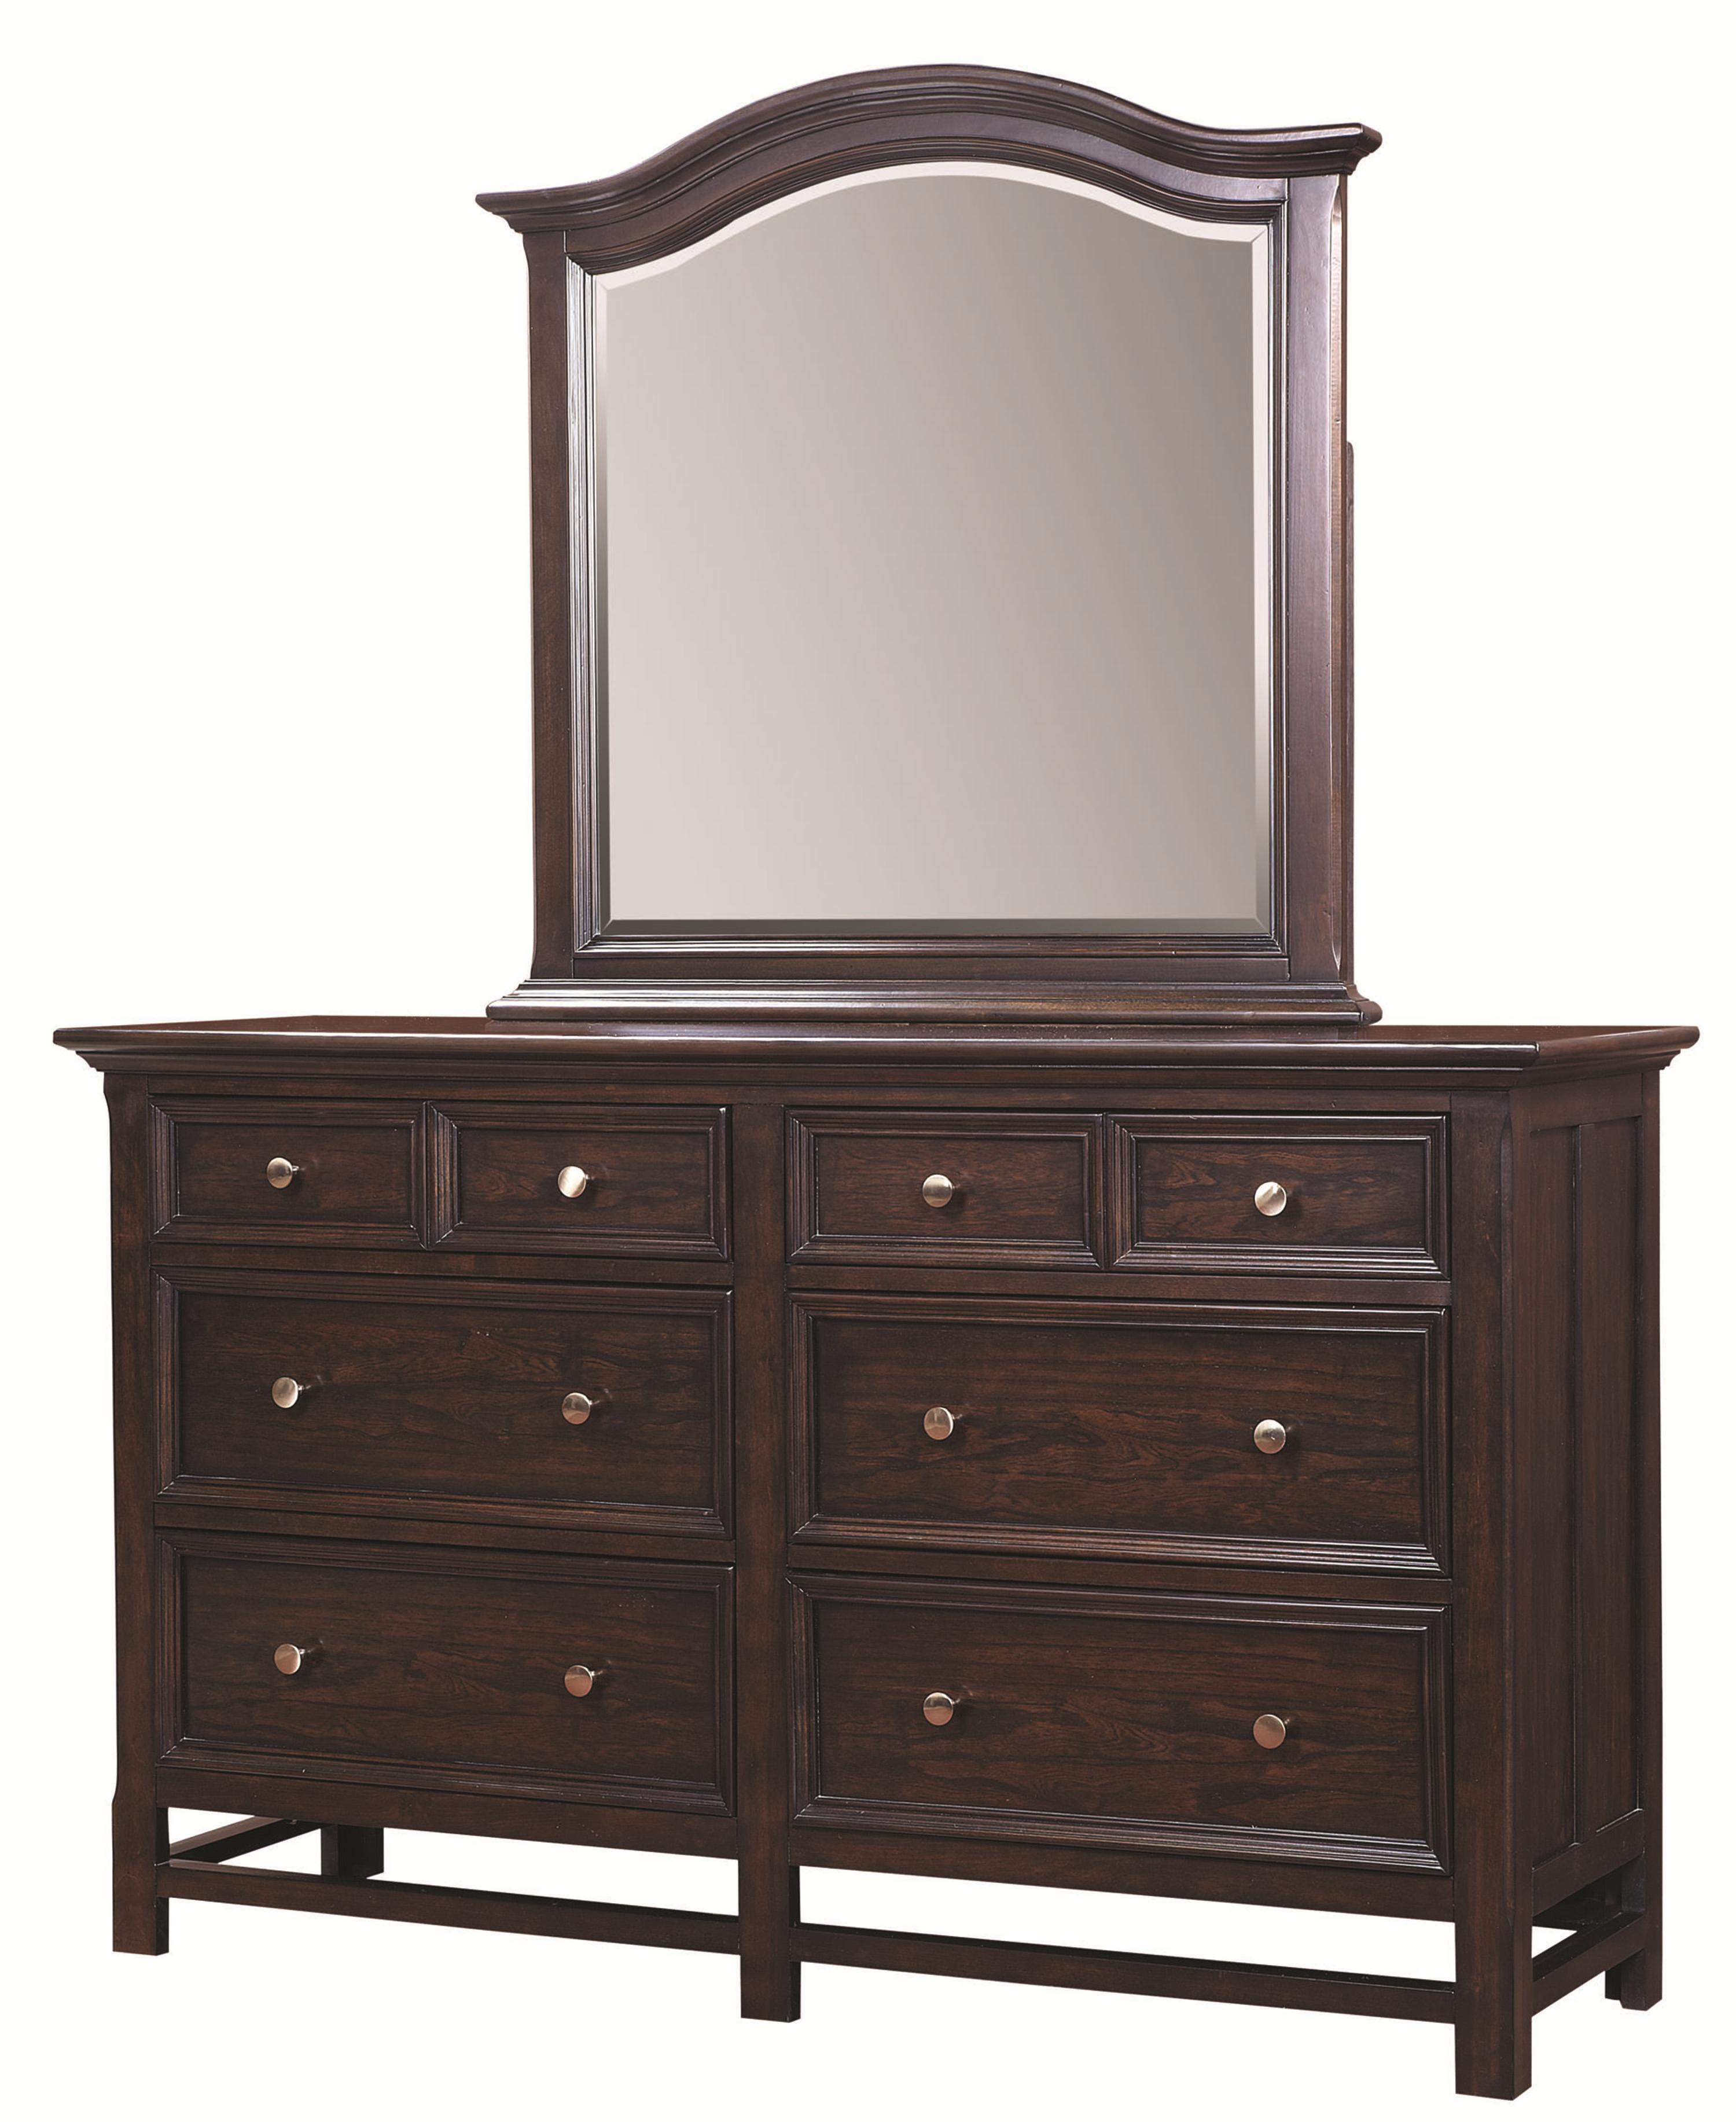 Copper Hill Dresser and Arched Mirror by Aspenhome at Stoney Creek Furniture